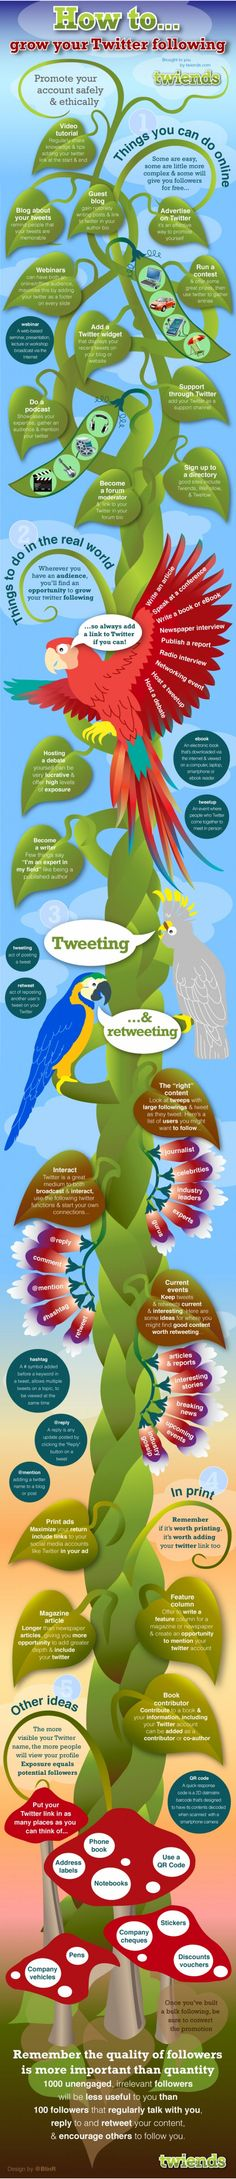 40 Ways to Increase Your Twitter Followers #Infographic